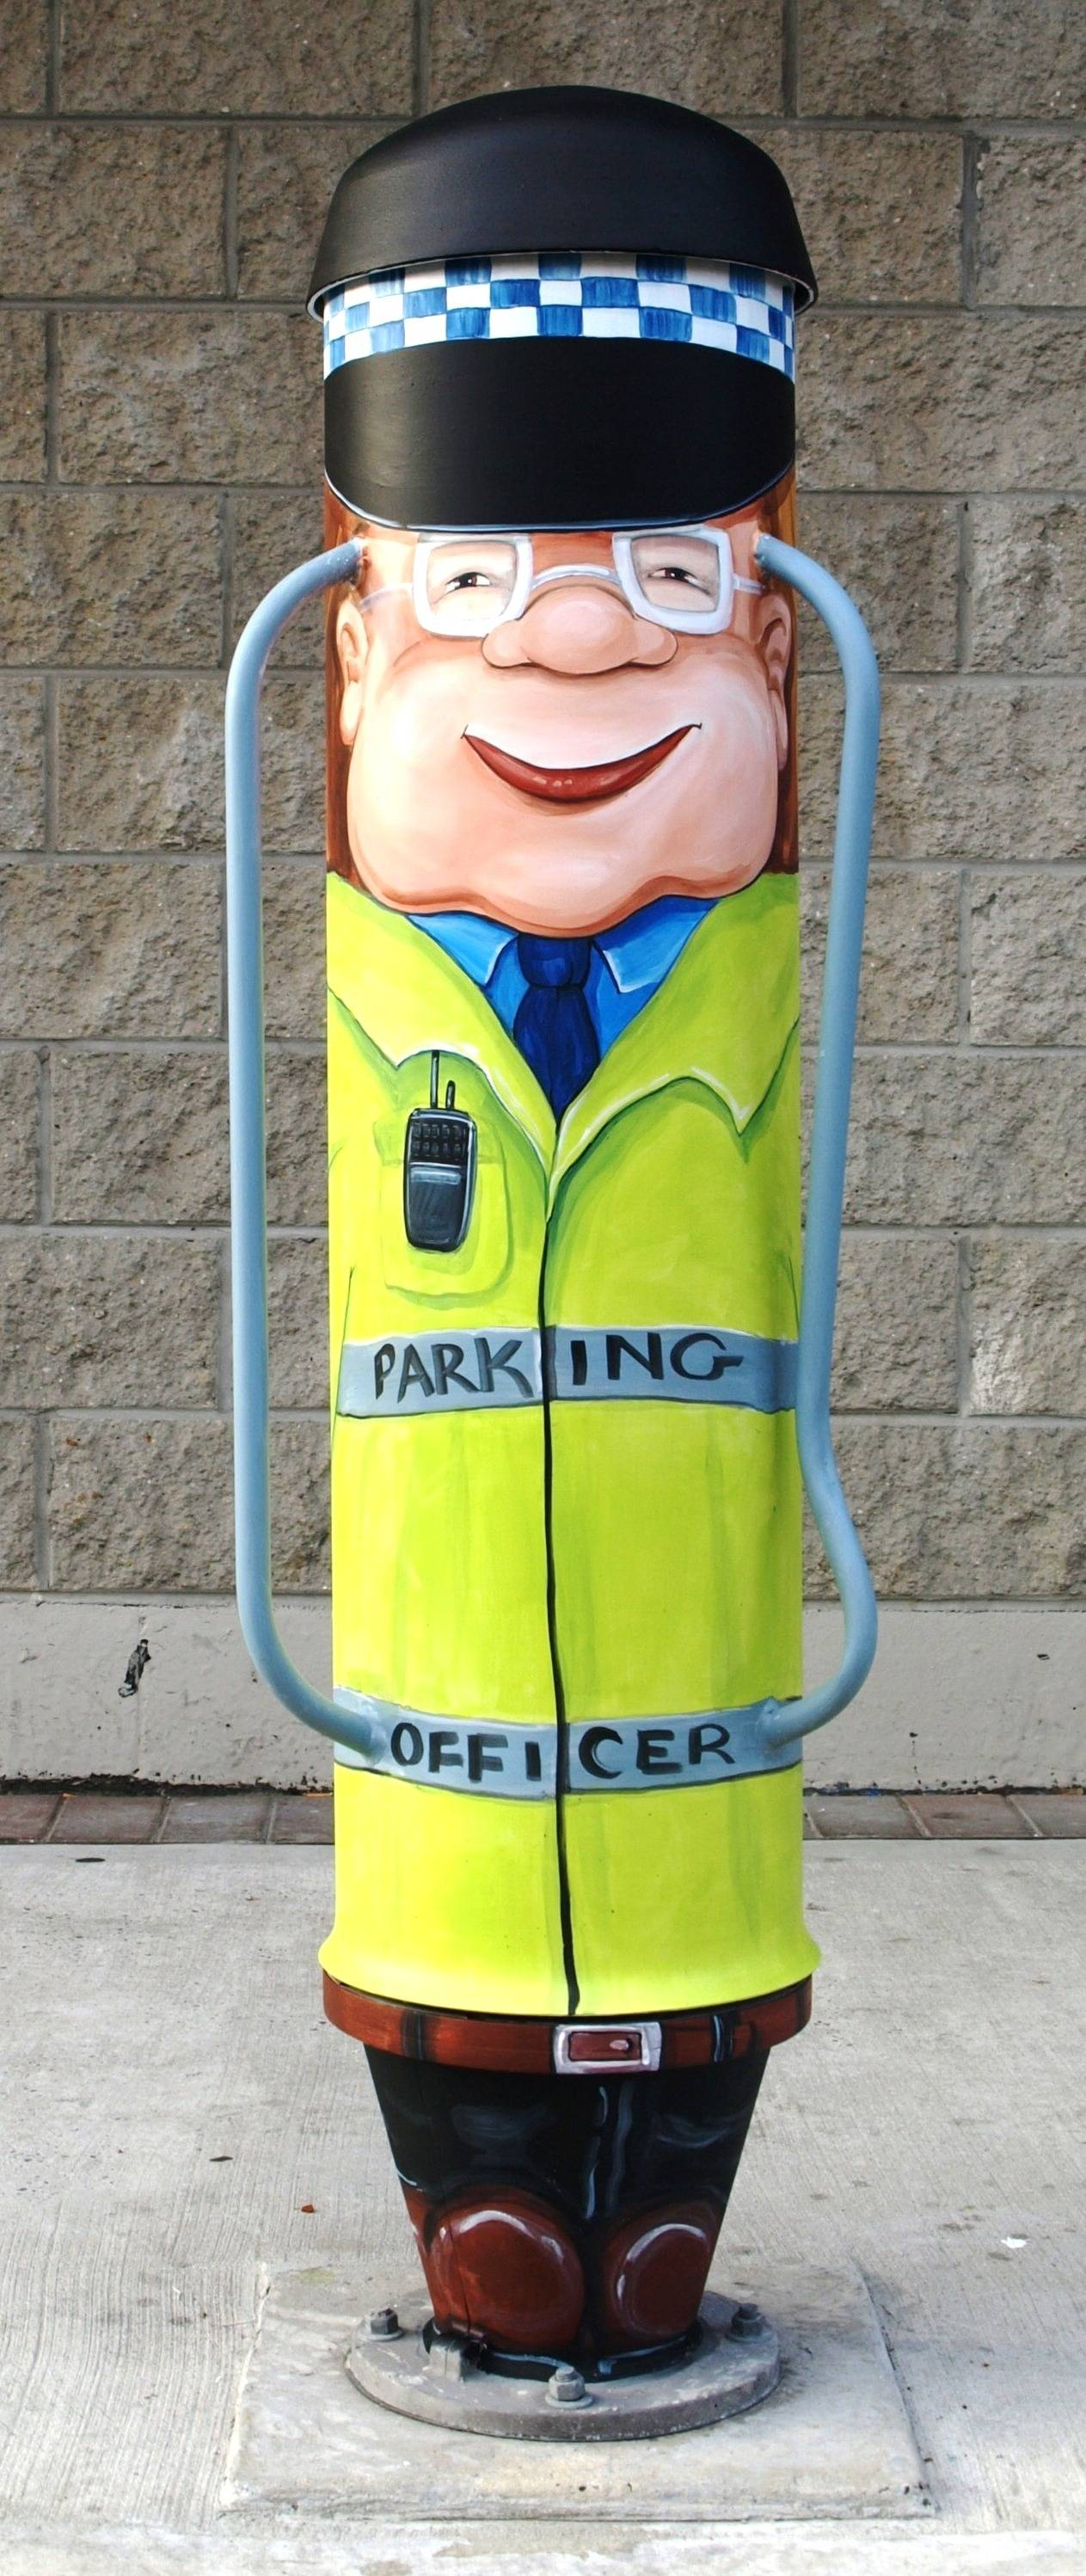 CLARENCE the parking attendant